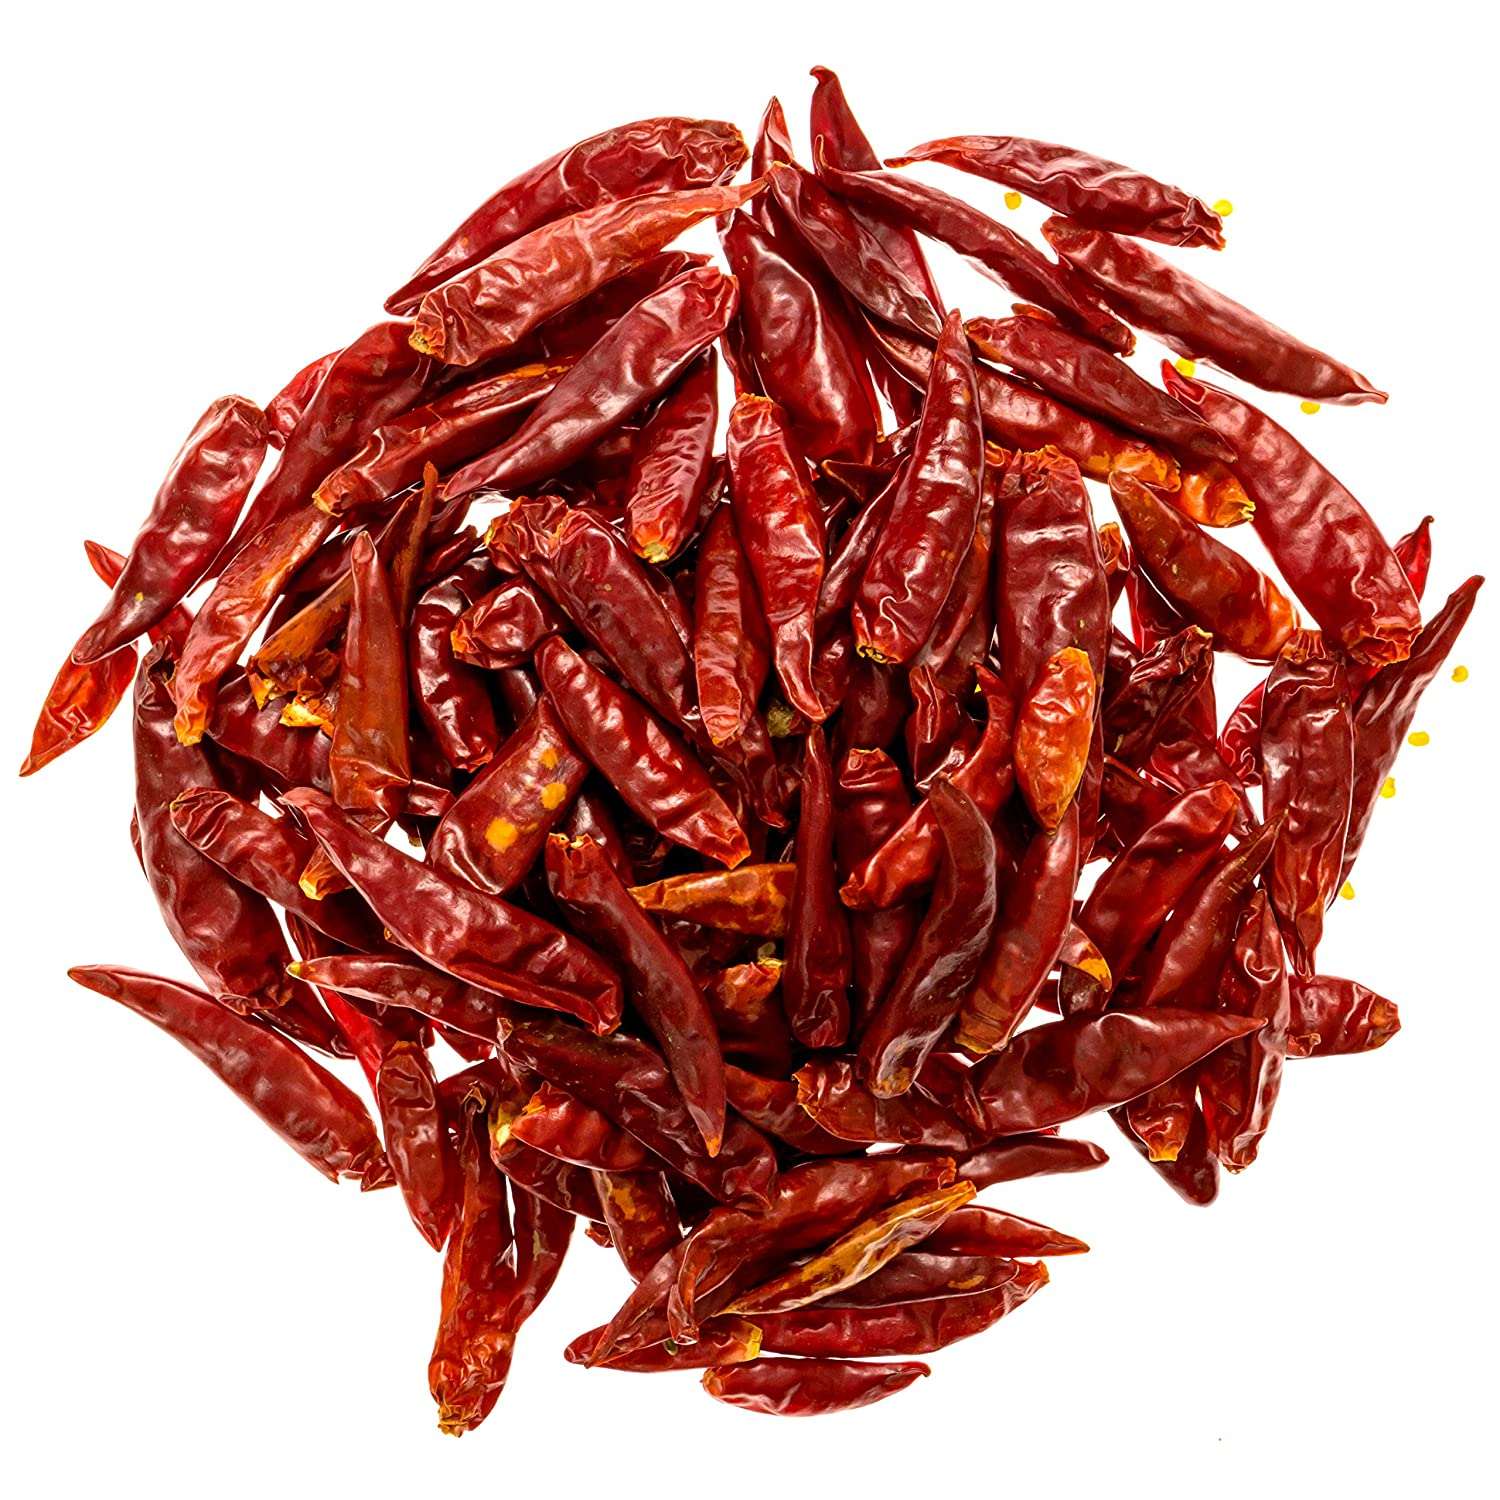 Amazon.com : Soeos Szechuan Dried Chili,Dry Szechuan Pepper, Dry Chile Peppers, Sichuan Pepper, Dried Red Chilies, 4oz, (Very Mild Spicy) : Grocery & Gourmet Food